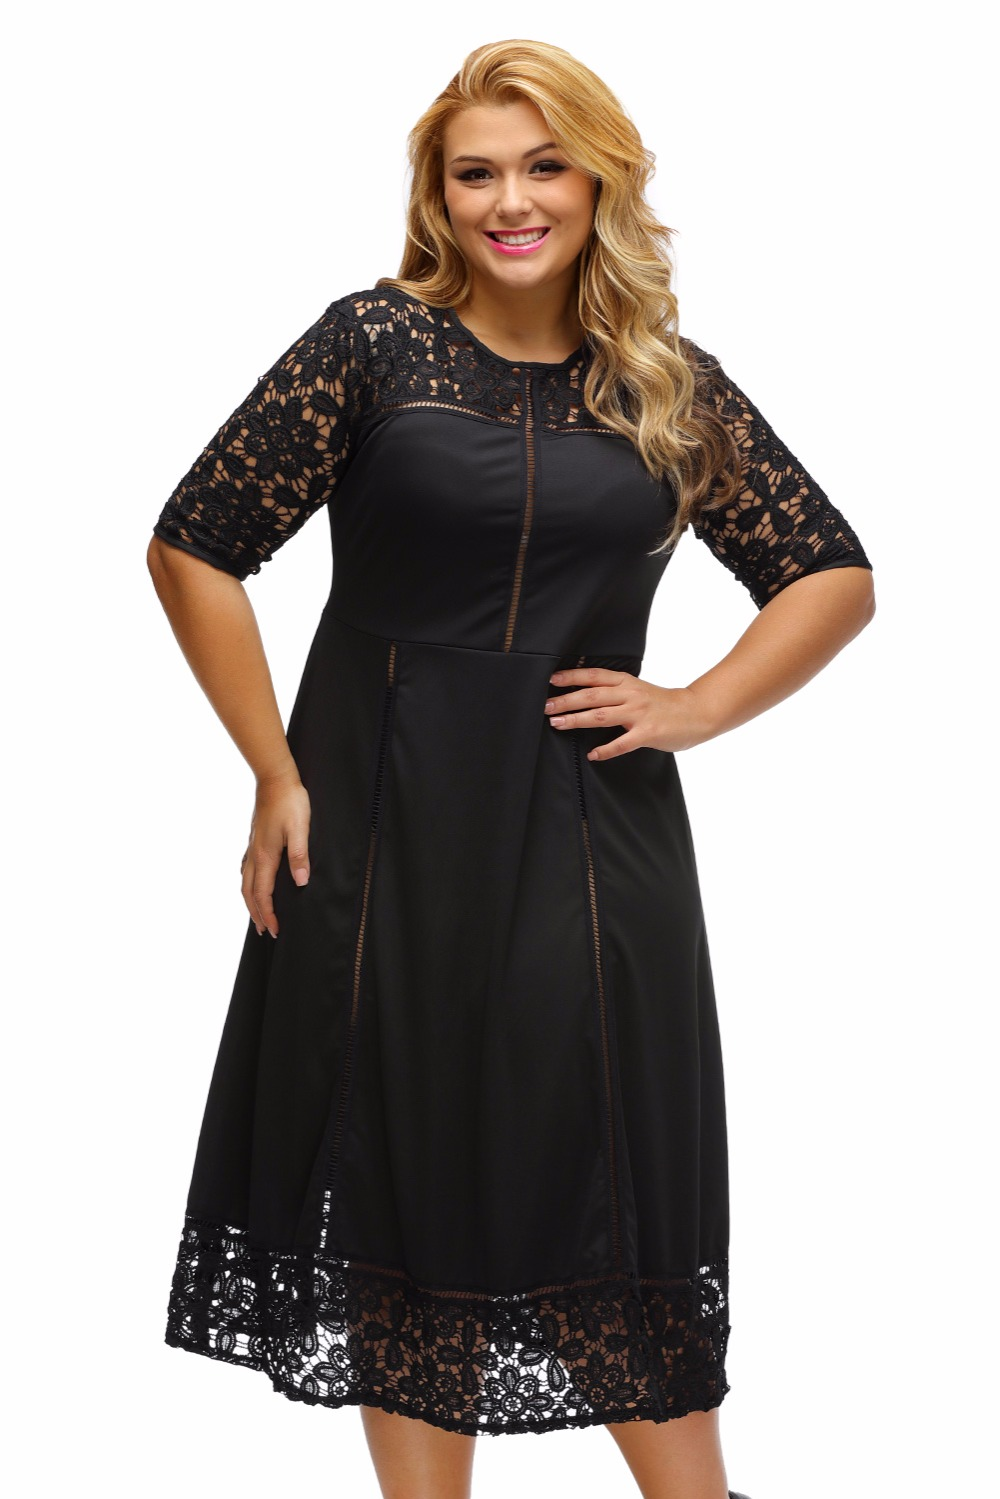 Zipper Back XL 3XL Plus Size Dress Big Women Black Floral Lace Splice Curvy  Dress Half Sleeve Little Black autumn winter Dress-in Dresses from Women s  ... 250b3e1552c2